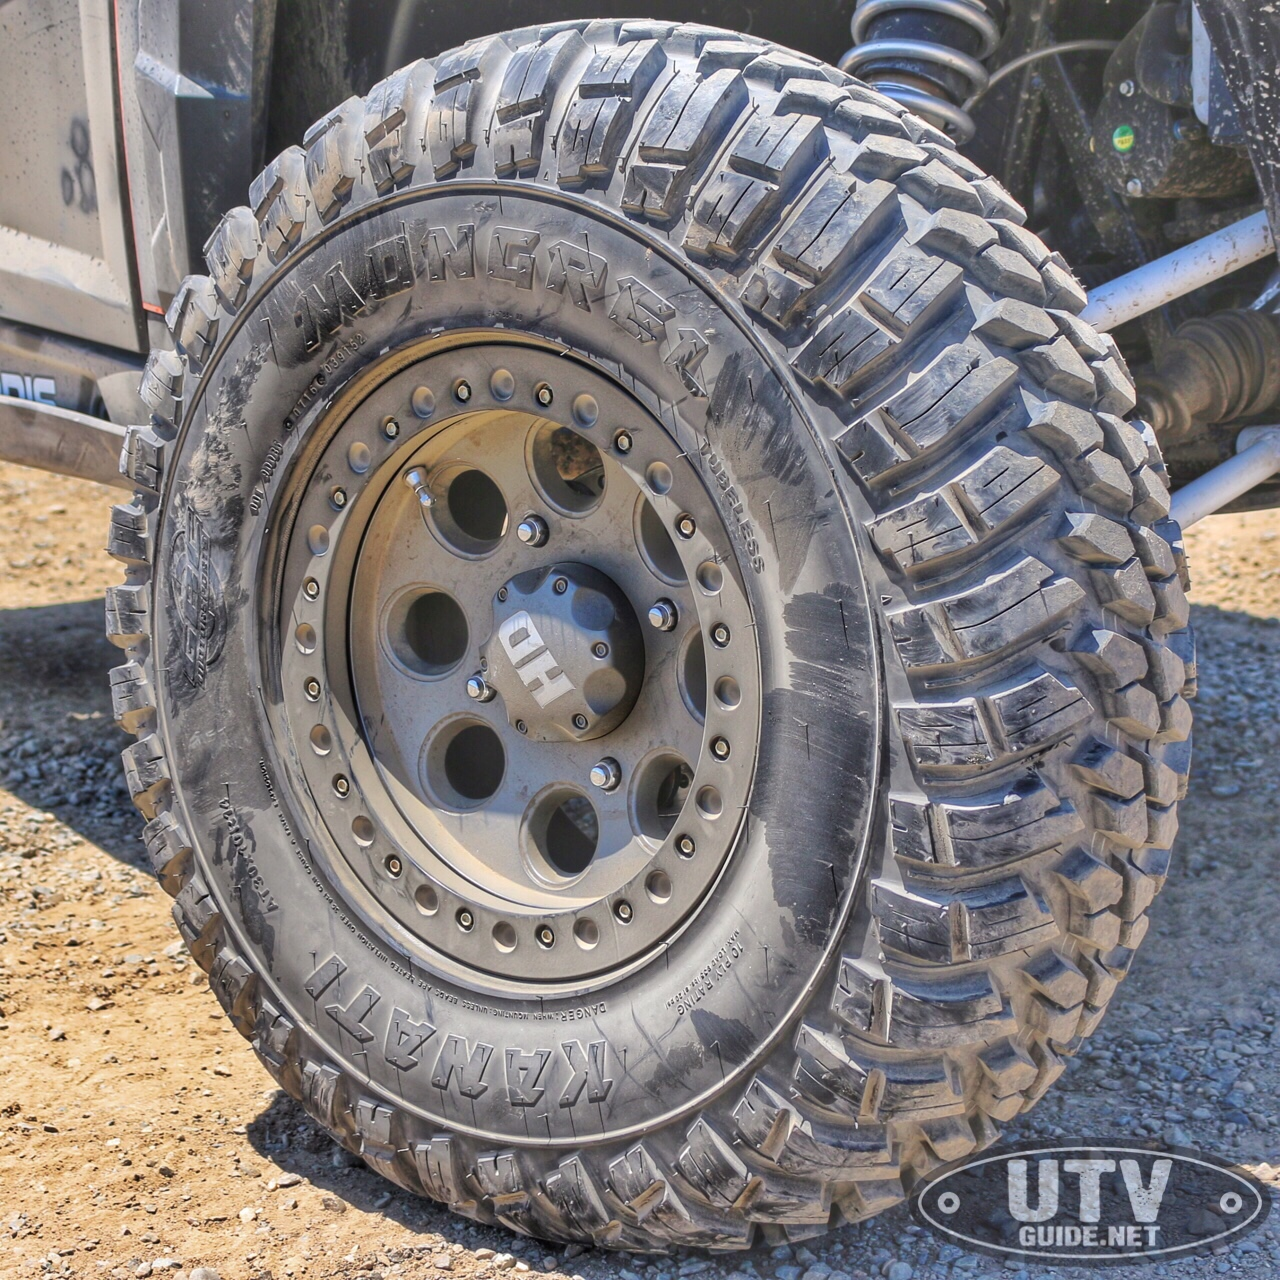 30 Inch Tire Shootout 2016 Utv Guide